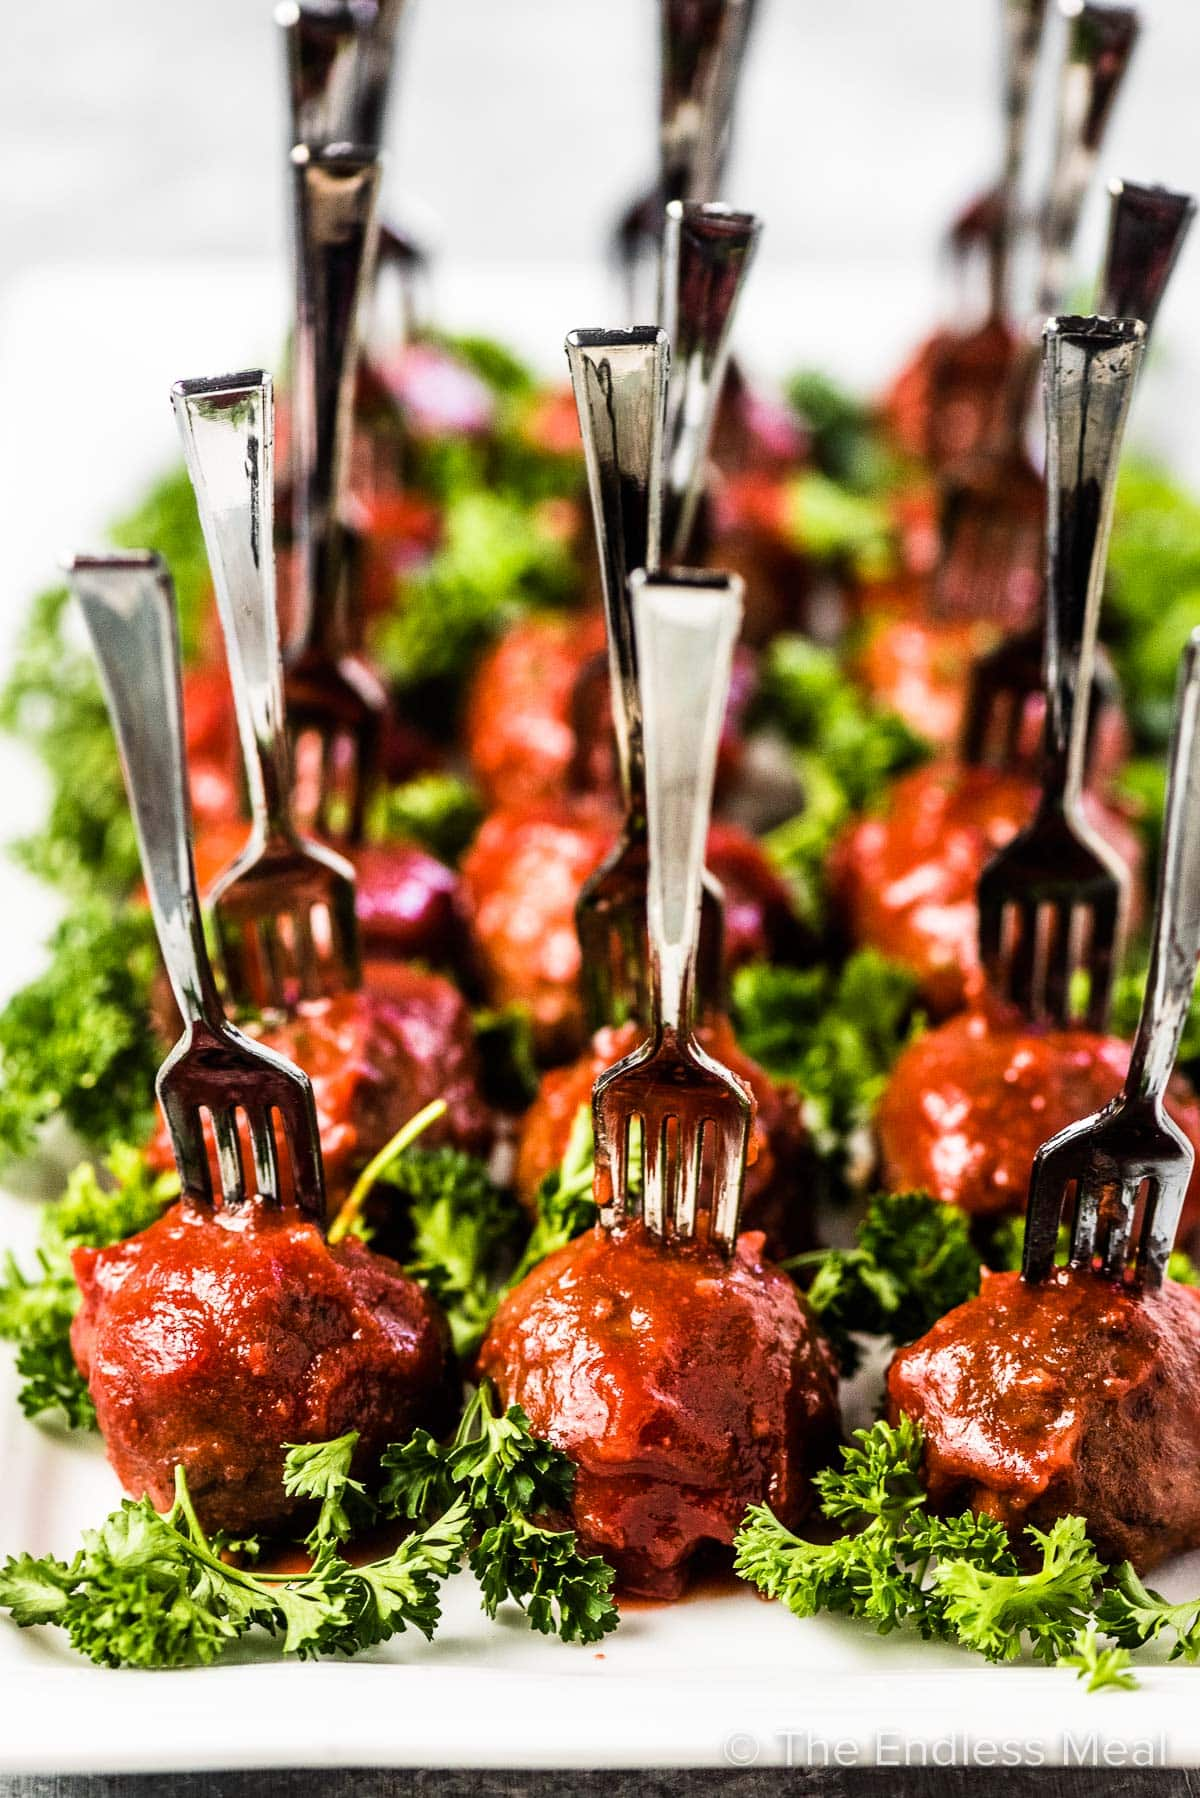 Cranberry meatballs on a serving tray with little forks in them and some greens sprinkled around.